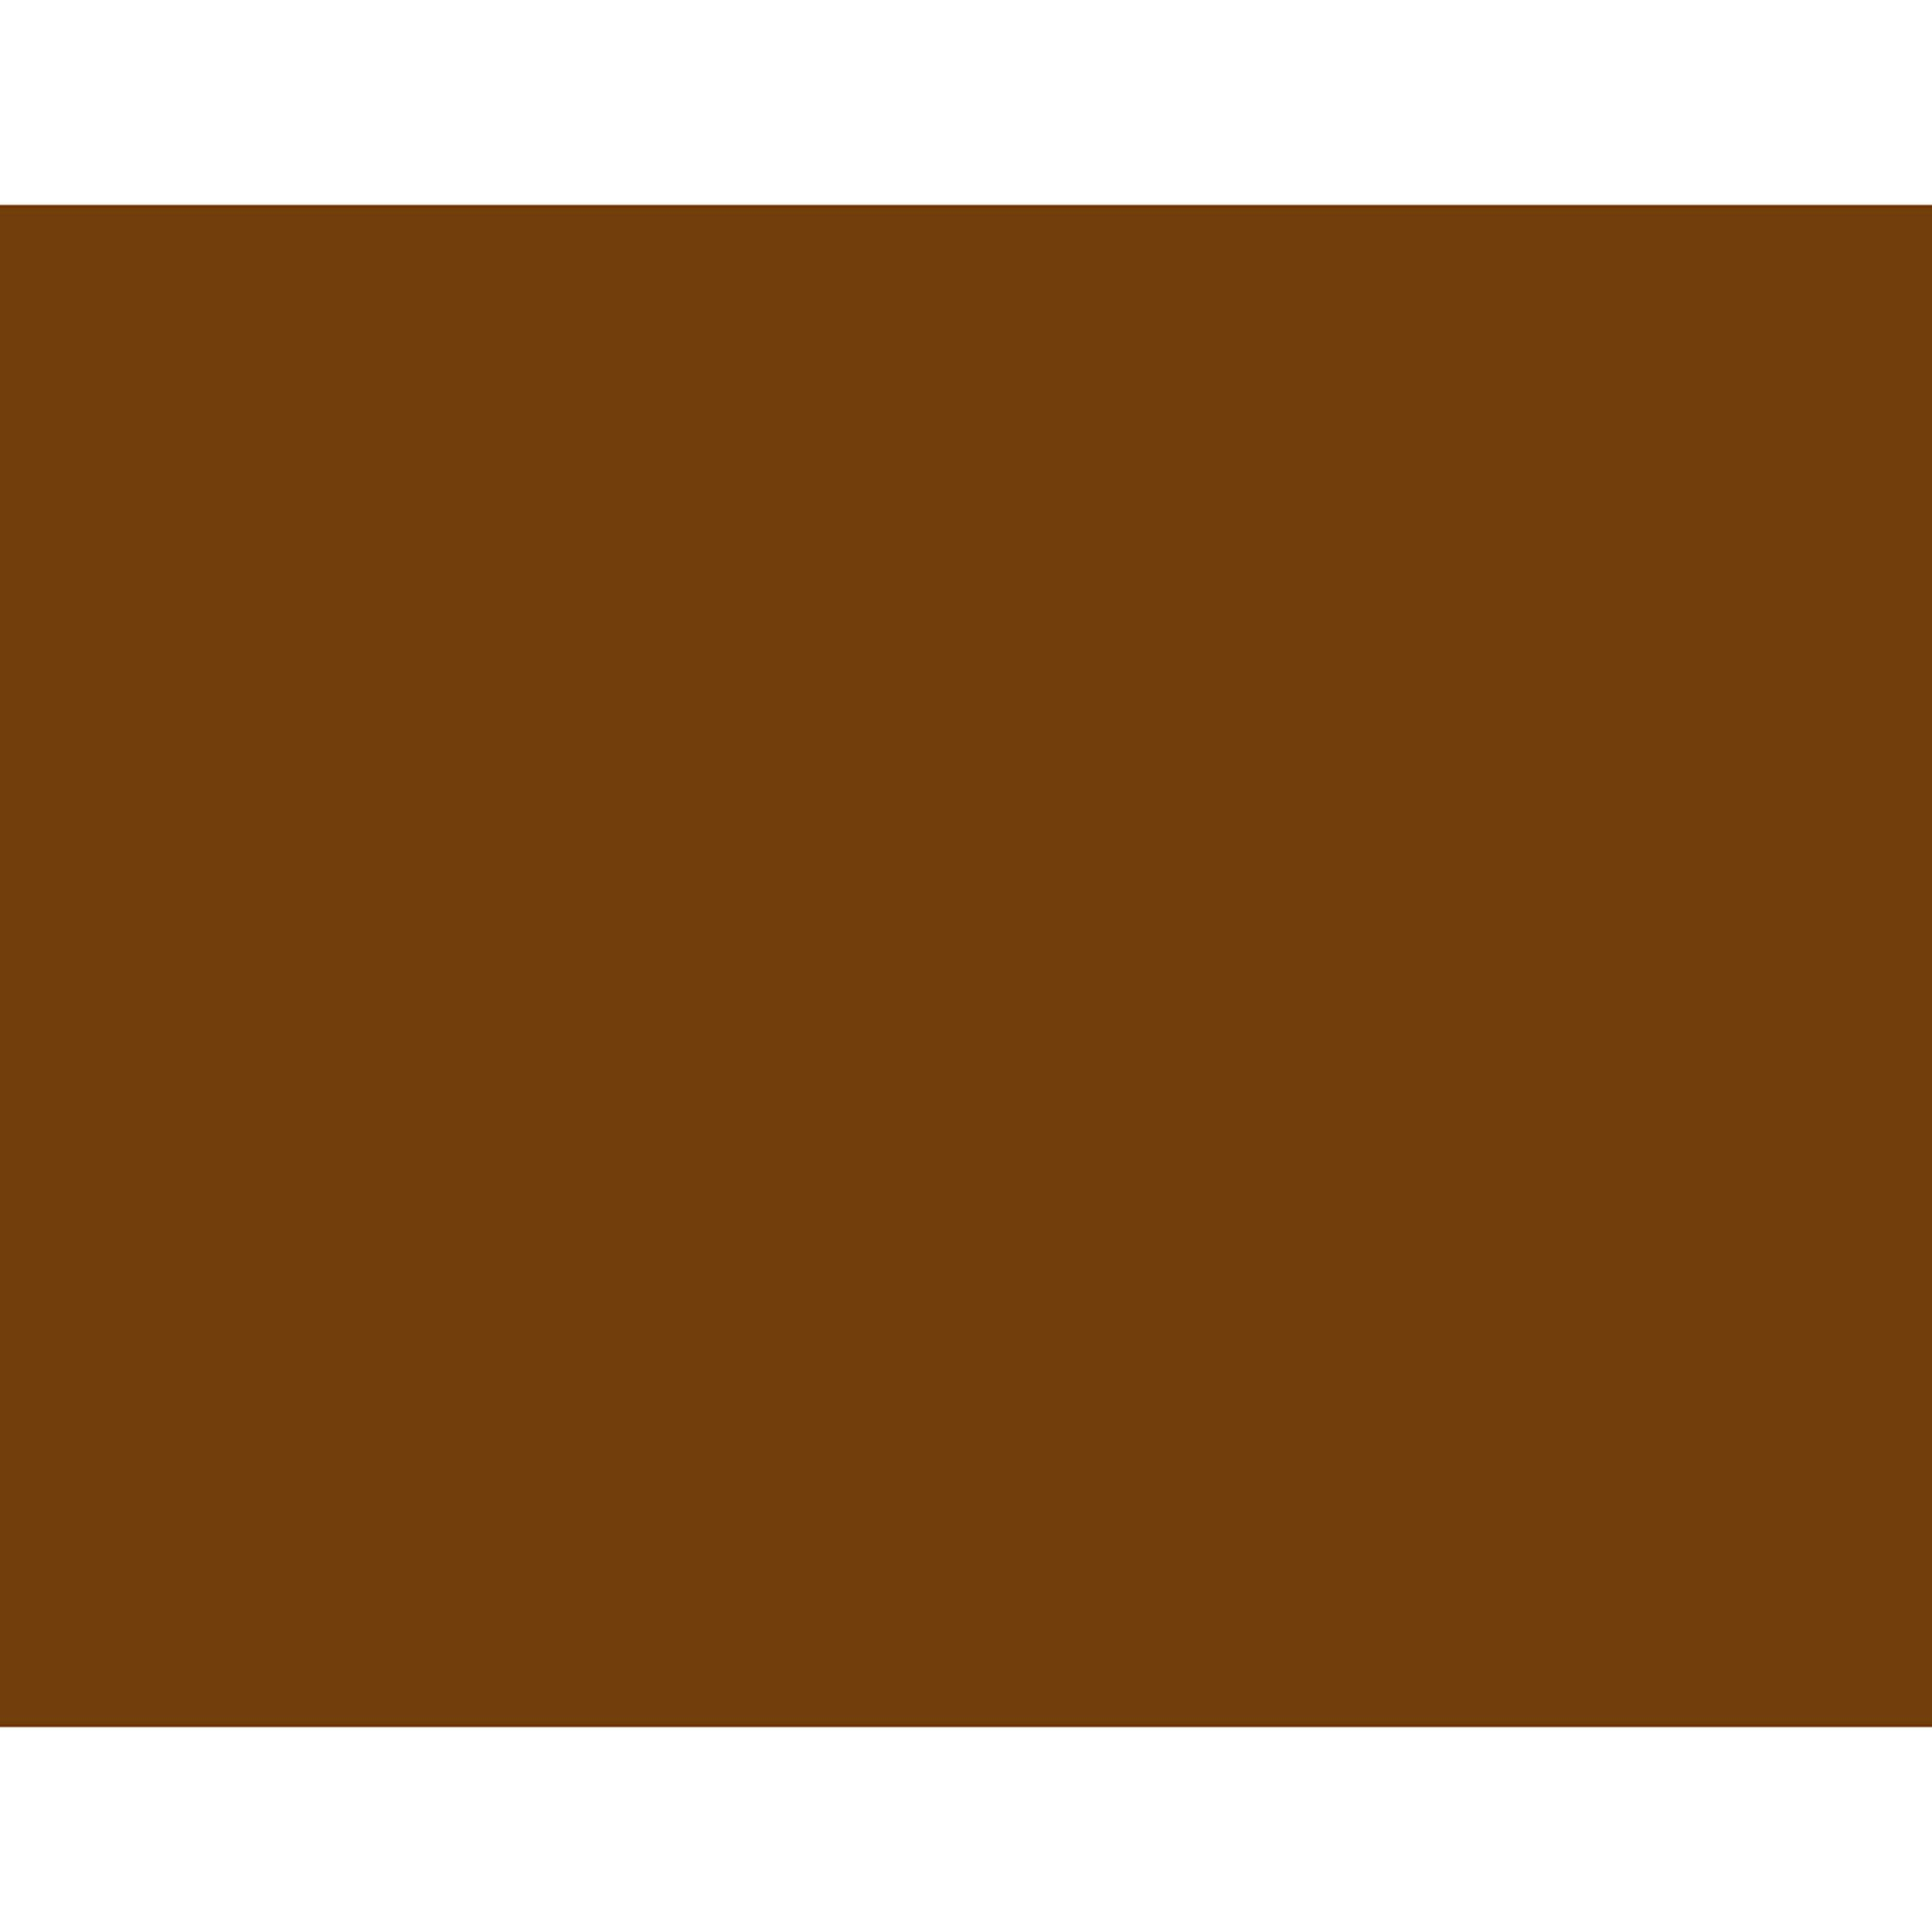 """BAZIC 22"""" X 28"""" Brown Poster Board, Colored Paper Drawing Painting Scrapbooking Graphic Display Carton, Art Craft Projects School Home DIY Decor (Case of 25)"""